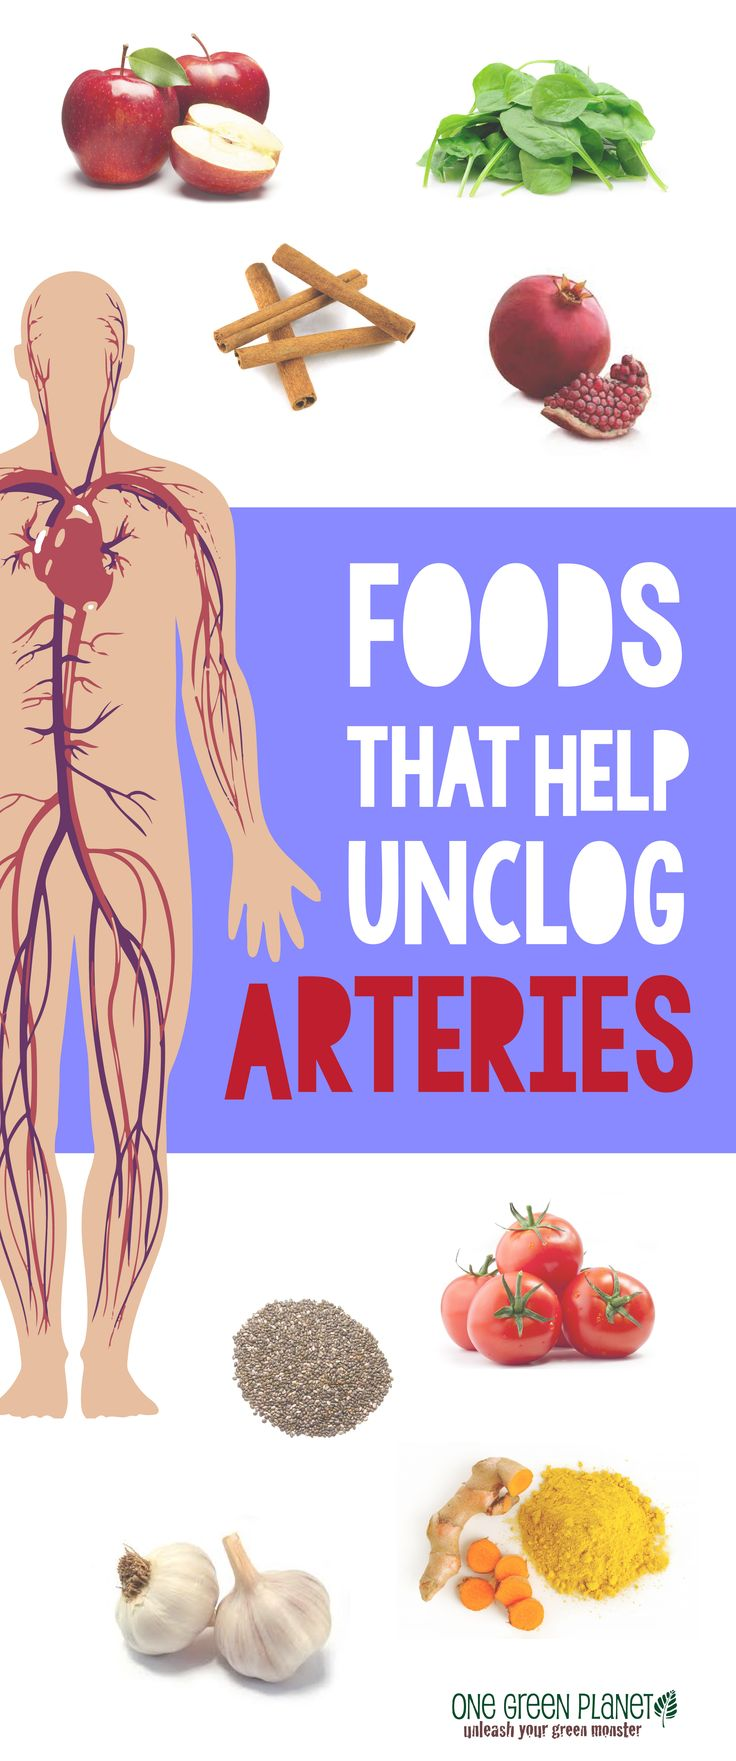 Foods for Unclogging Arteries: Garlic, Pomegranate, Turmeric, Chia Seeds, Cinnamon, Apples, Tomatoes, Greens | Asparagus, Spirulina, Cranberries, Watermelon http://www.realfarmacy.com/the-top-6-artery-cleansing-foods/